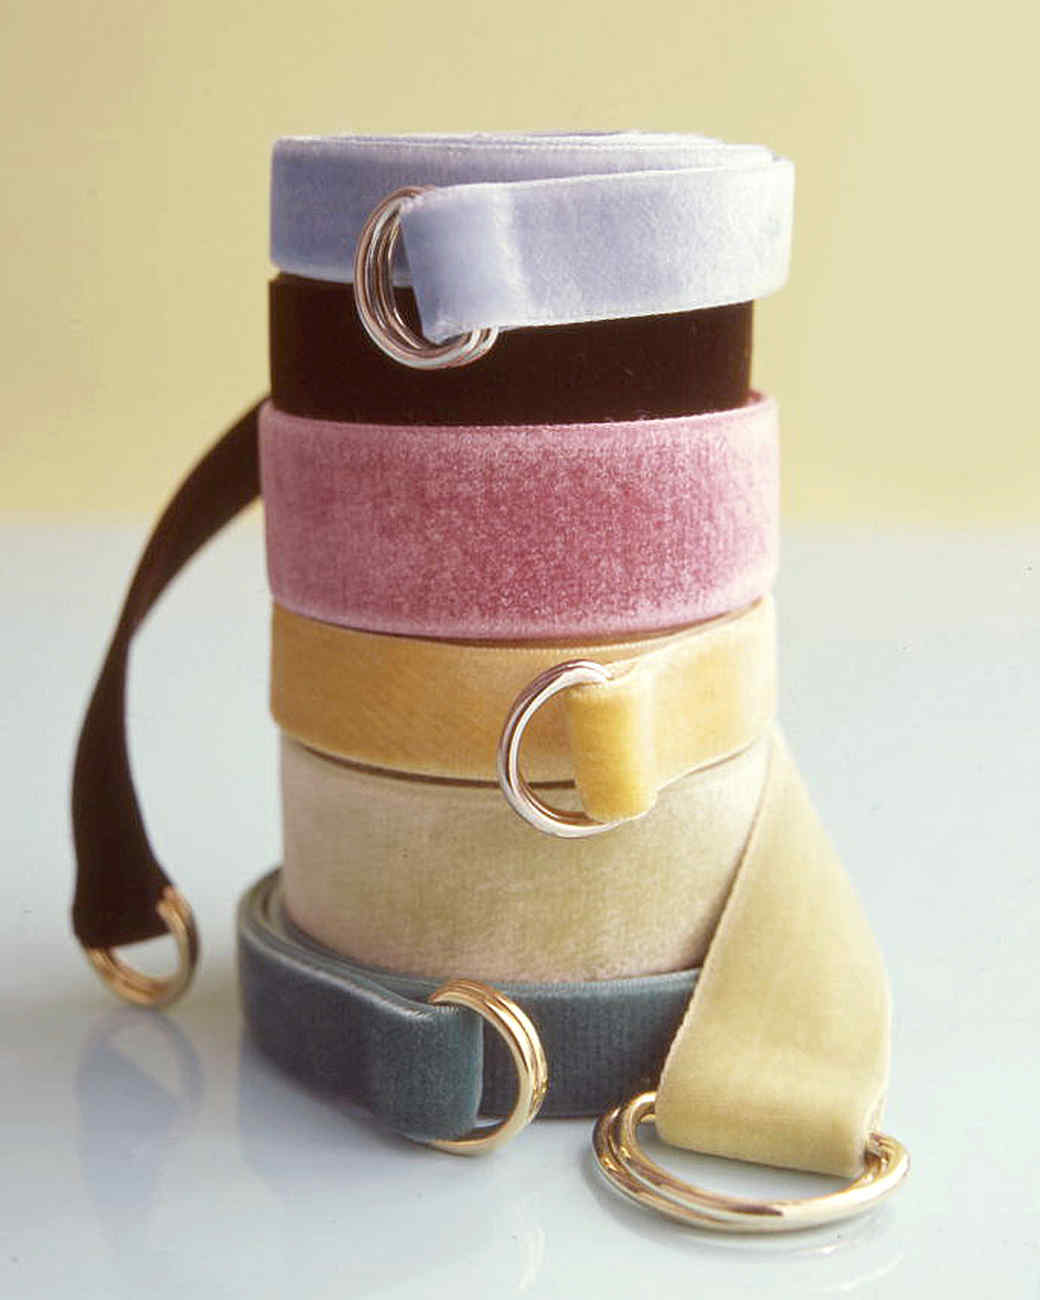 Velvet-Ribbon Belts